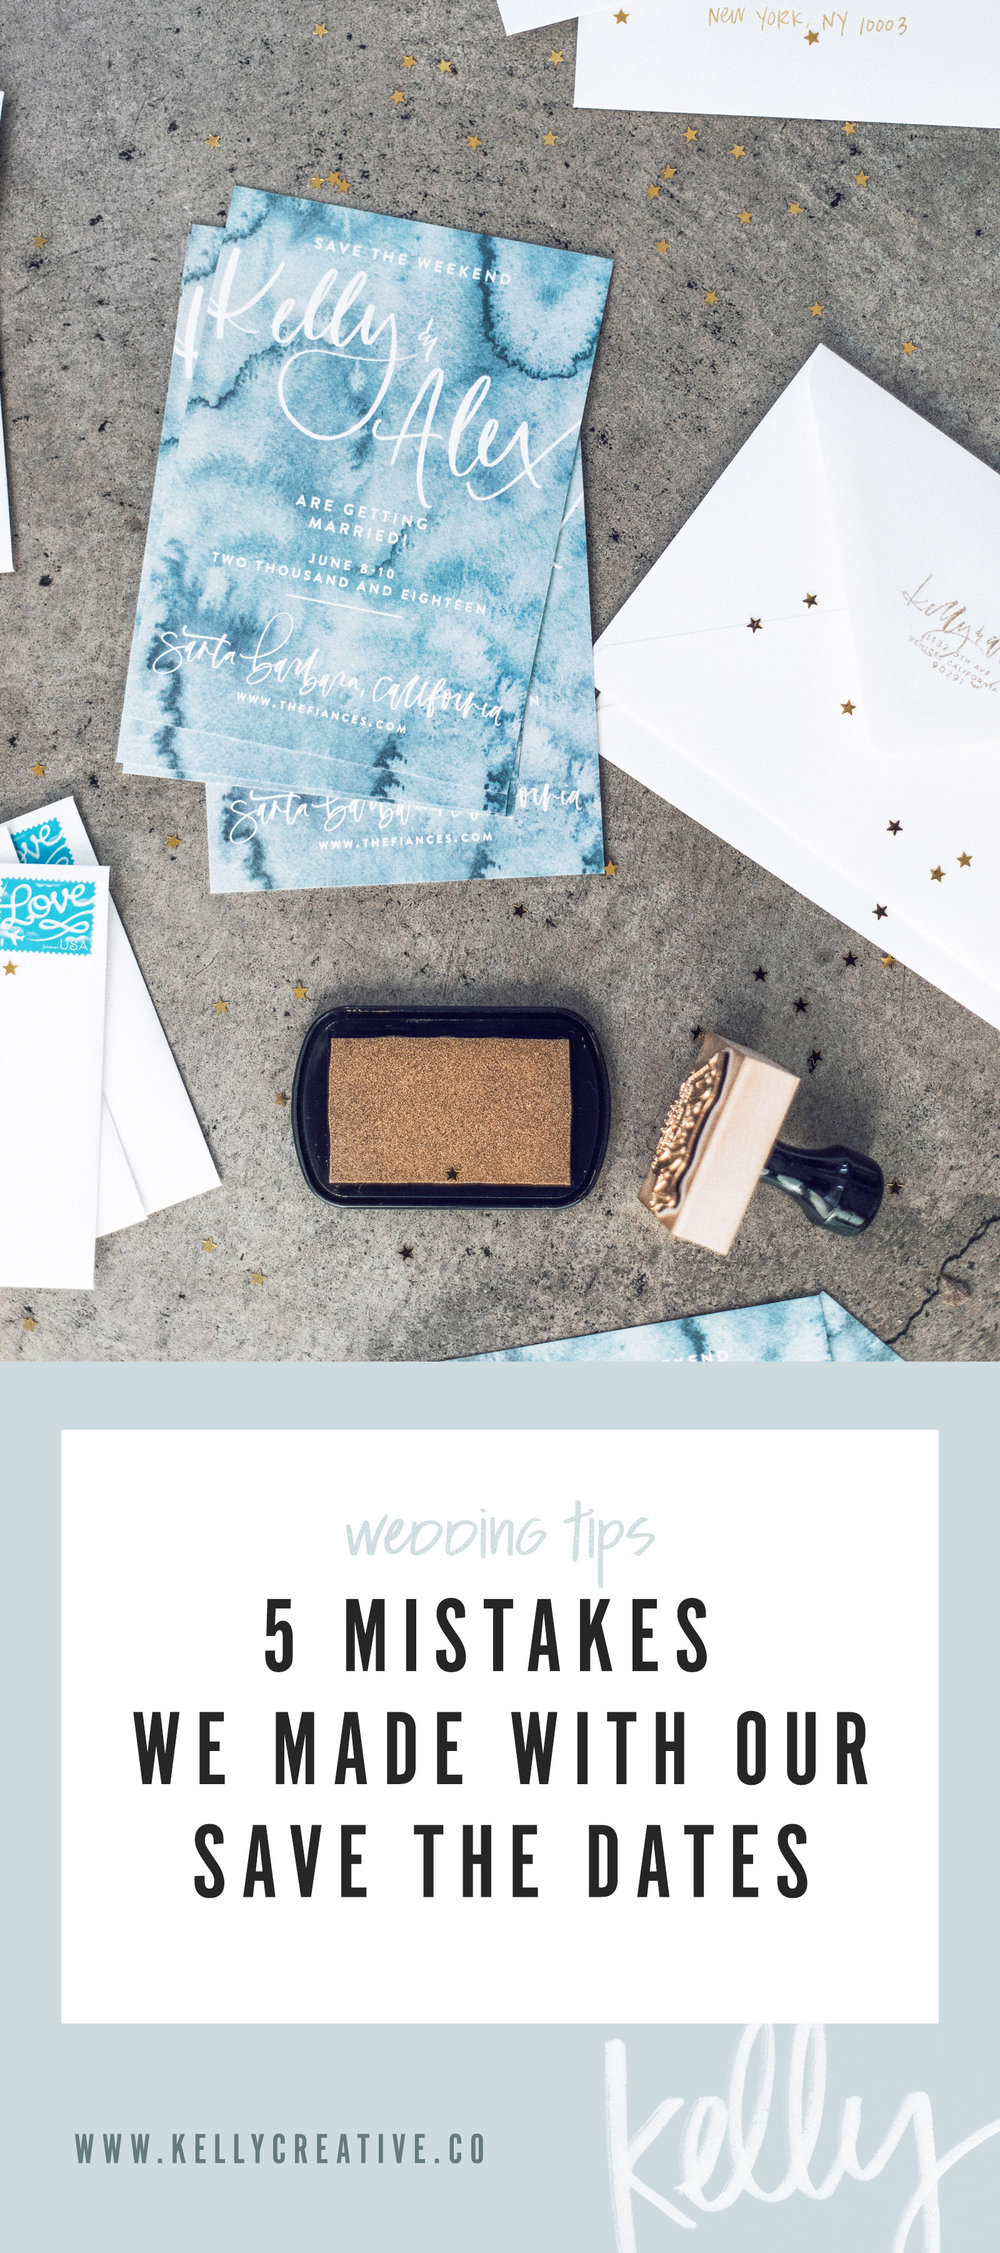 5 Mistakes We Made With Our Save the Dates / wedding tips / invitations / graphic design / hand lettering / kelly creative